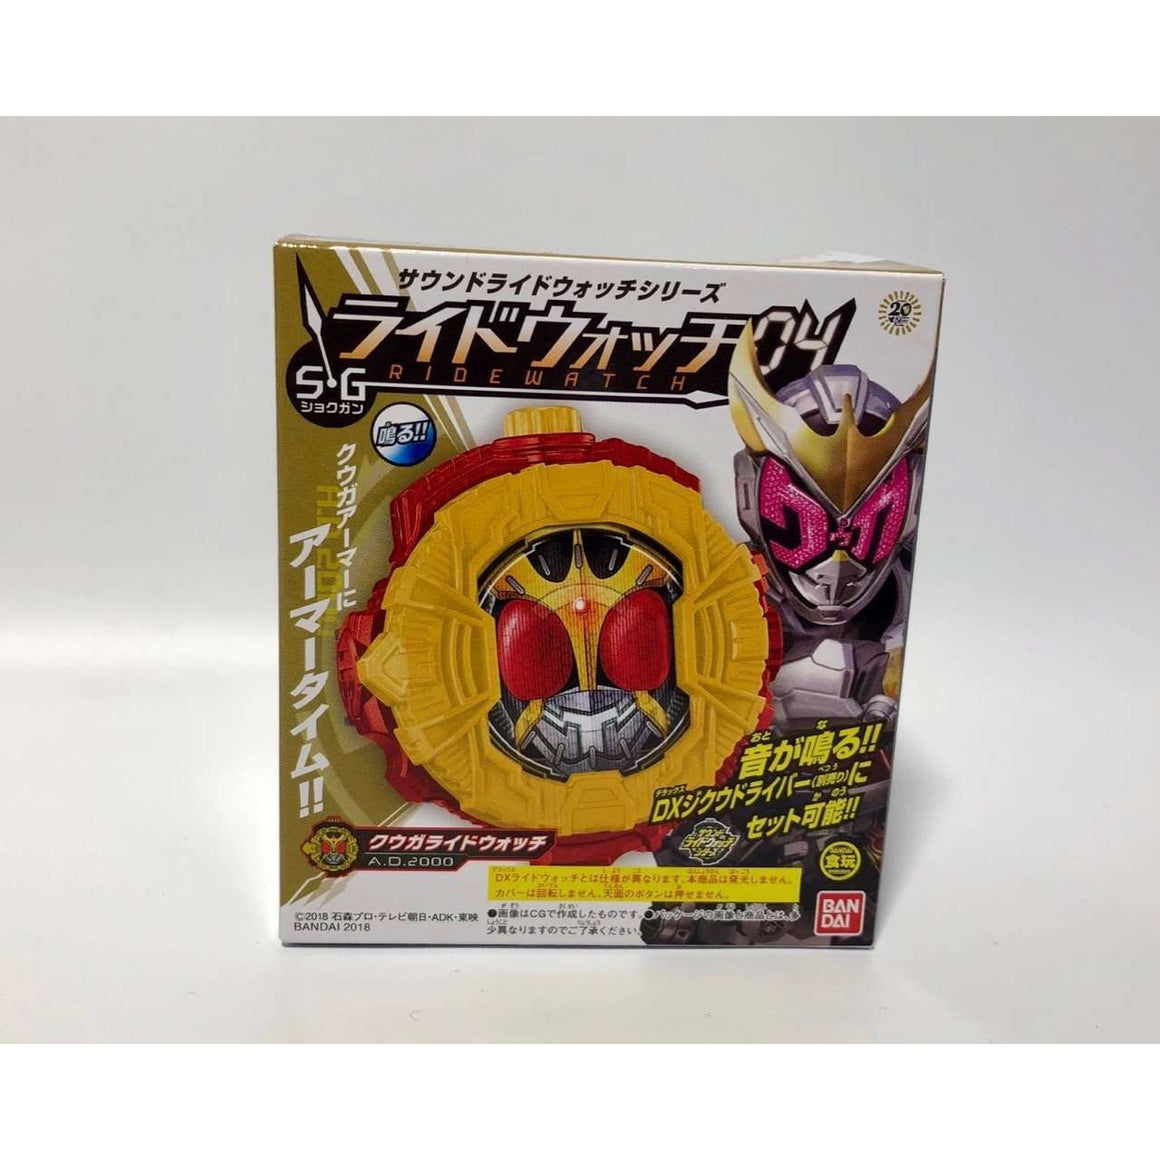 CSTOYS INTERNATIONAL:Candy Toy Kamen Rider Zi-O: SG Sound Ride Watch 04 - 03. Kuuga Ride Watch